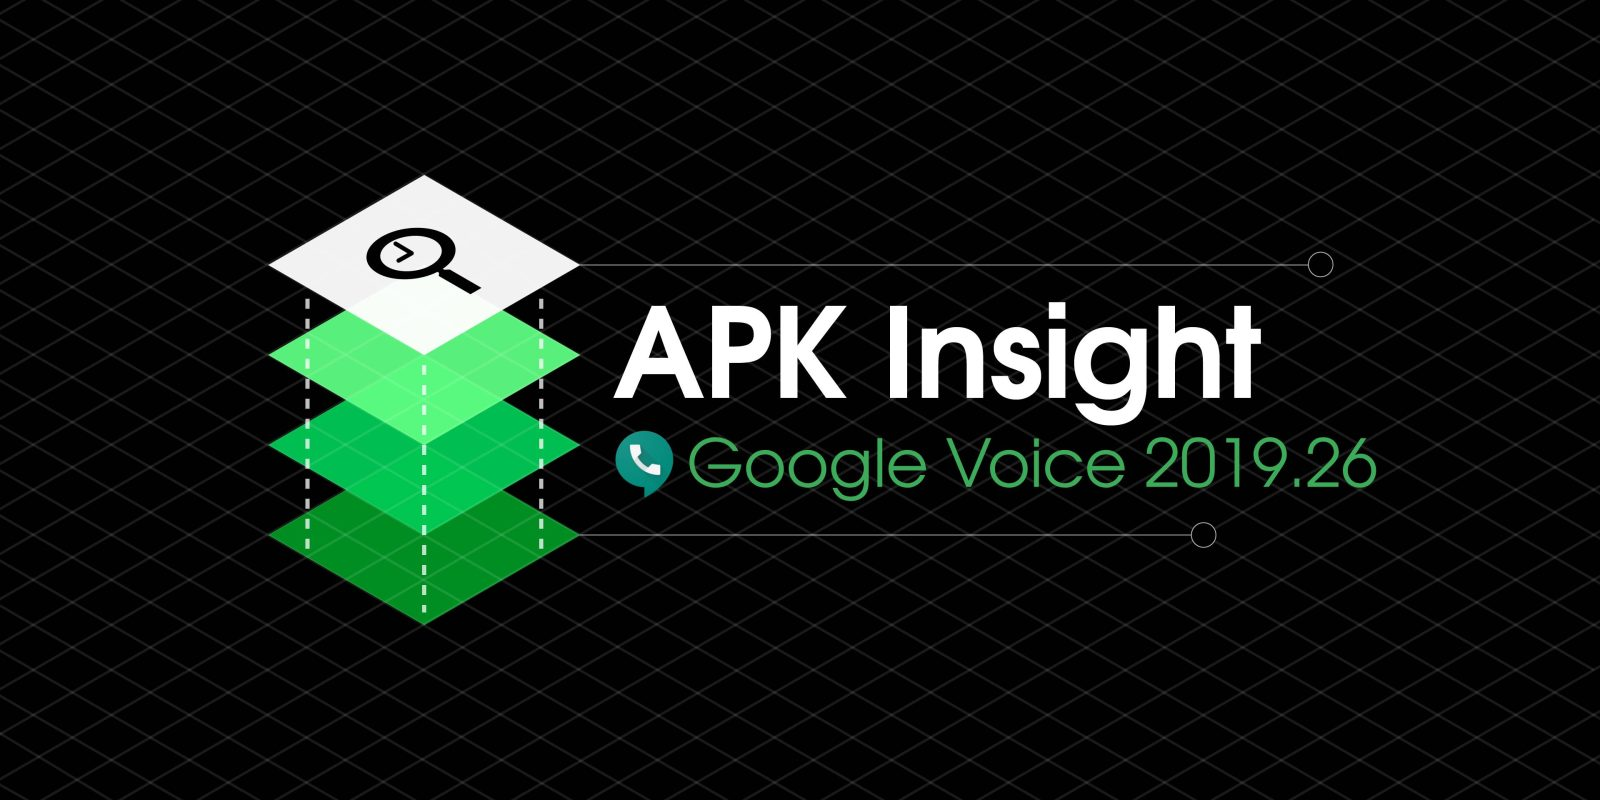 Google Voice 2019.26 adds Material Theme avatars, preps 'Driving Mode' [APK Insight]